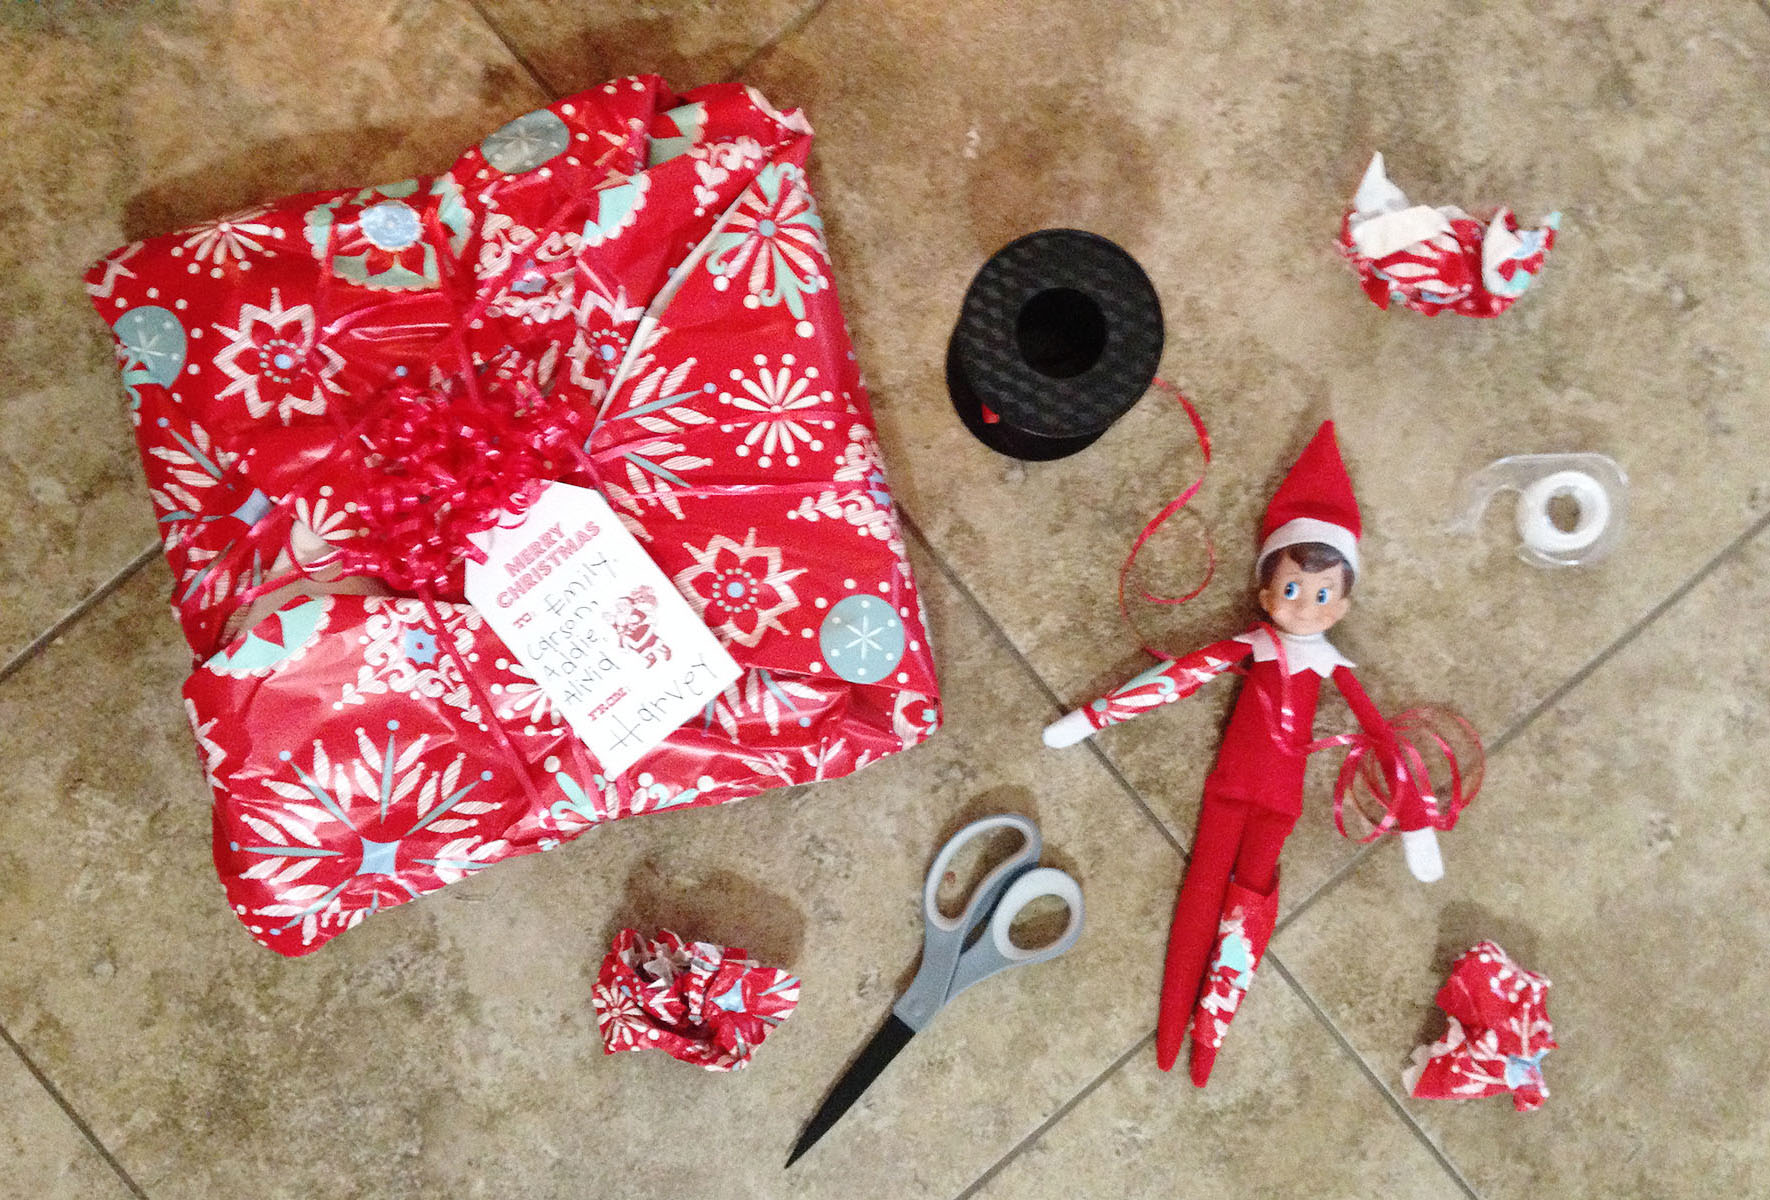 Elf makes a mess while trying to wrap presents.